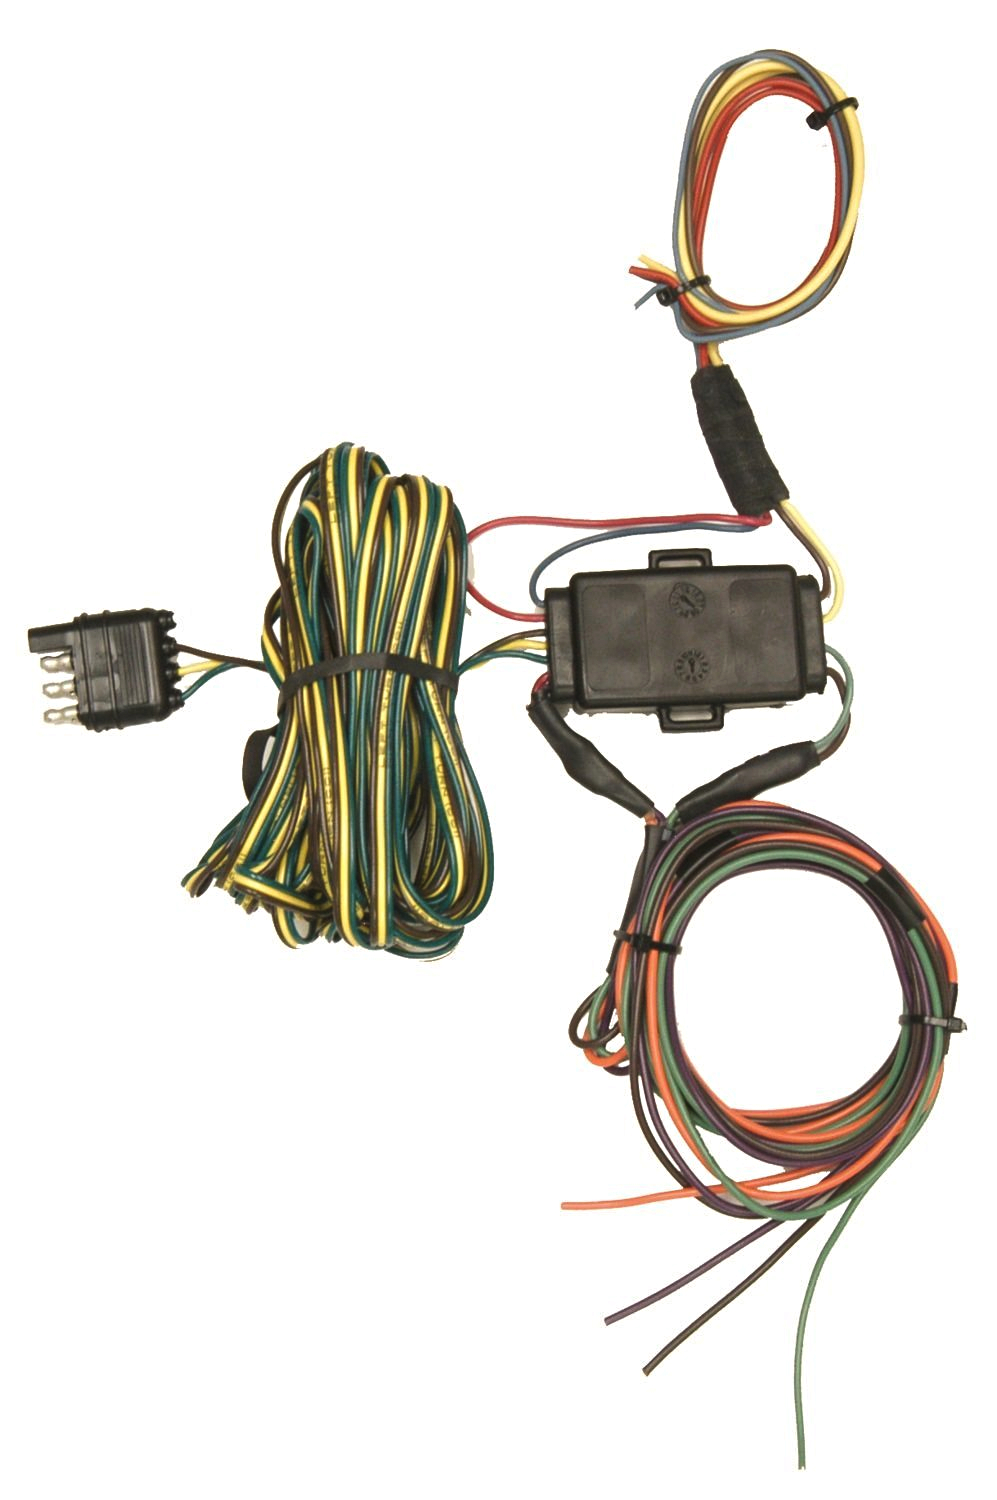 Hopkins 56200 Jeep Towed Vehicle Wiring Kit 2010 Chevrolet Traverse Tail Light Harness All Dinghy Towing Harnesses